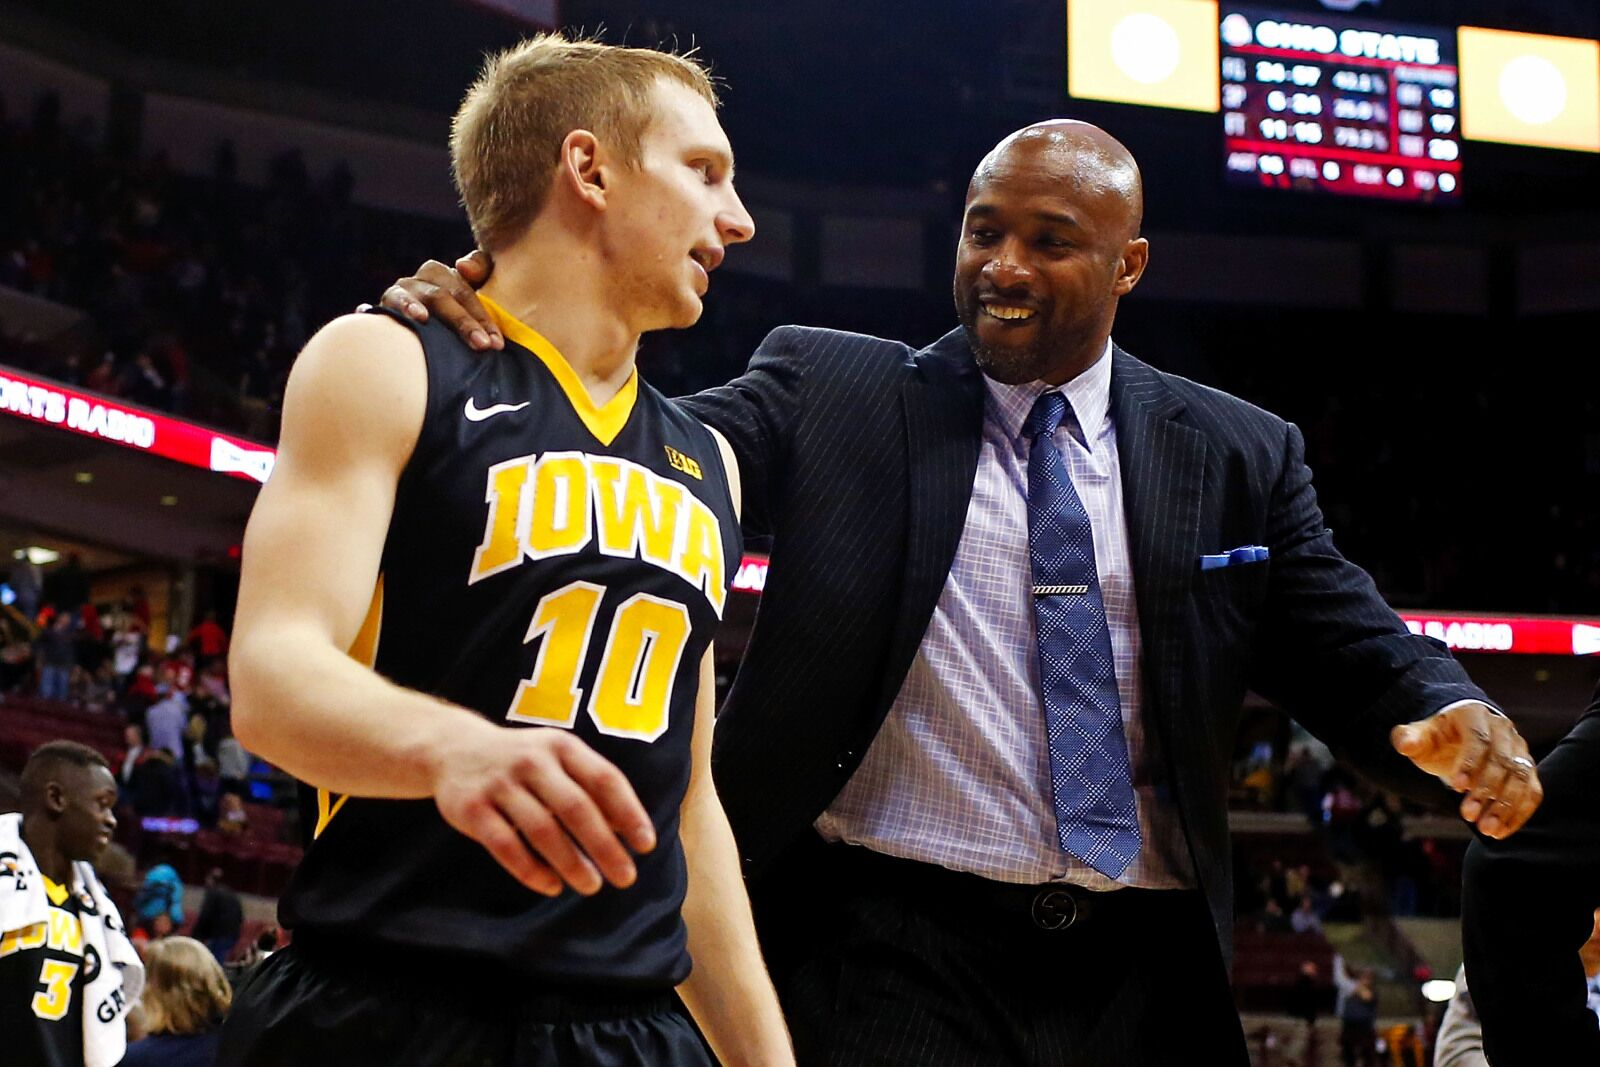 Iowa basketball: Four former Hawks who could replace Andrew Francis